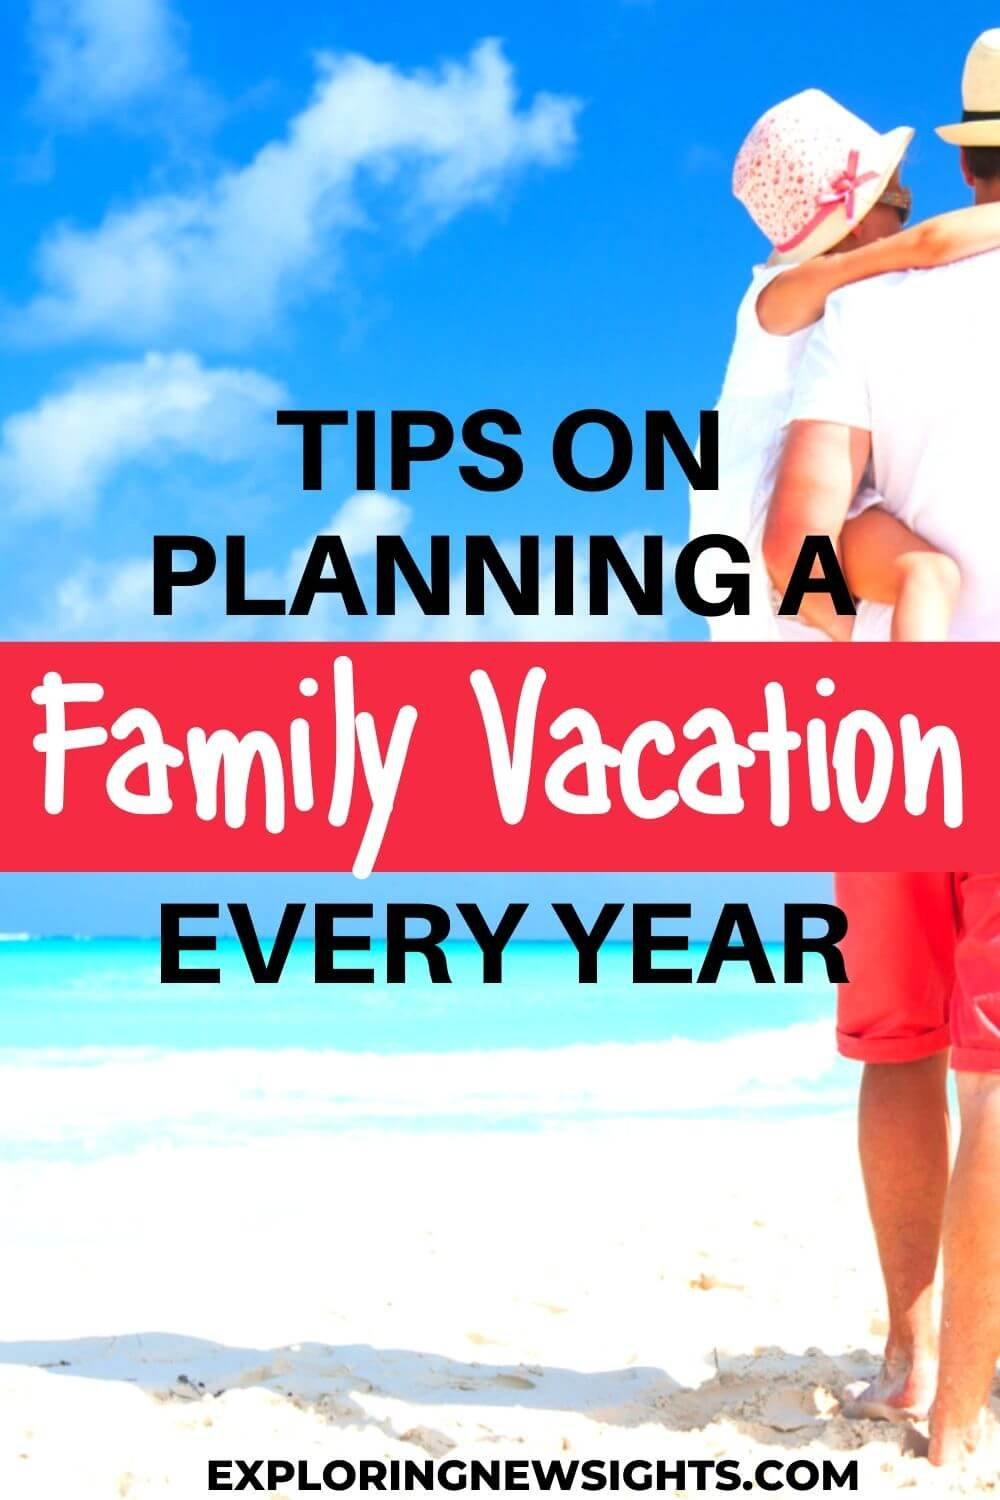 fAMILY VACAY - Family Vacation: Why its Important Save and Plan for One Every Year